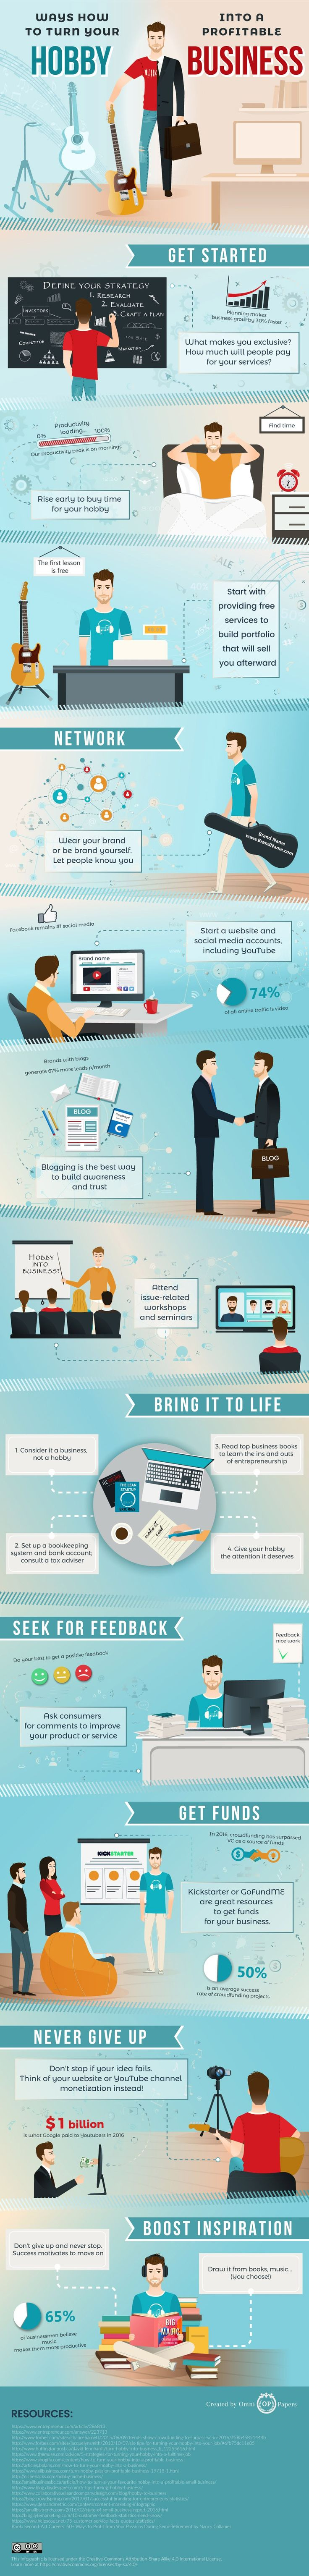 Ways How To Turn Your Hobby Into Business #infographic #Business #MakeMoney #Hobbies